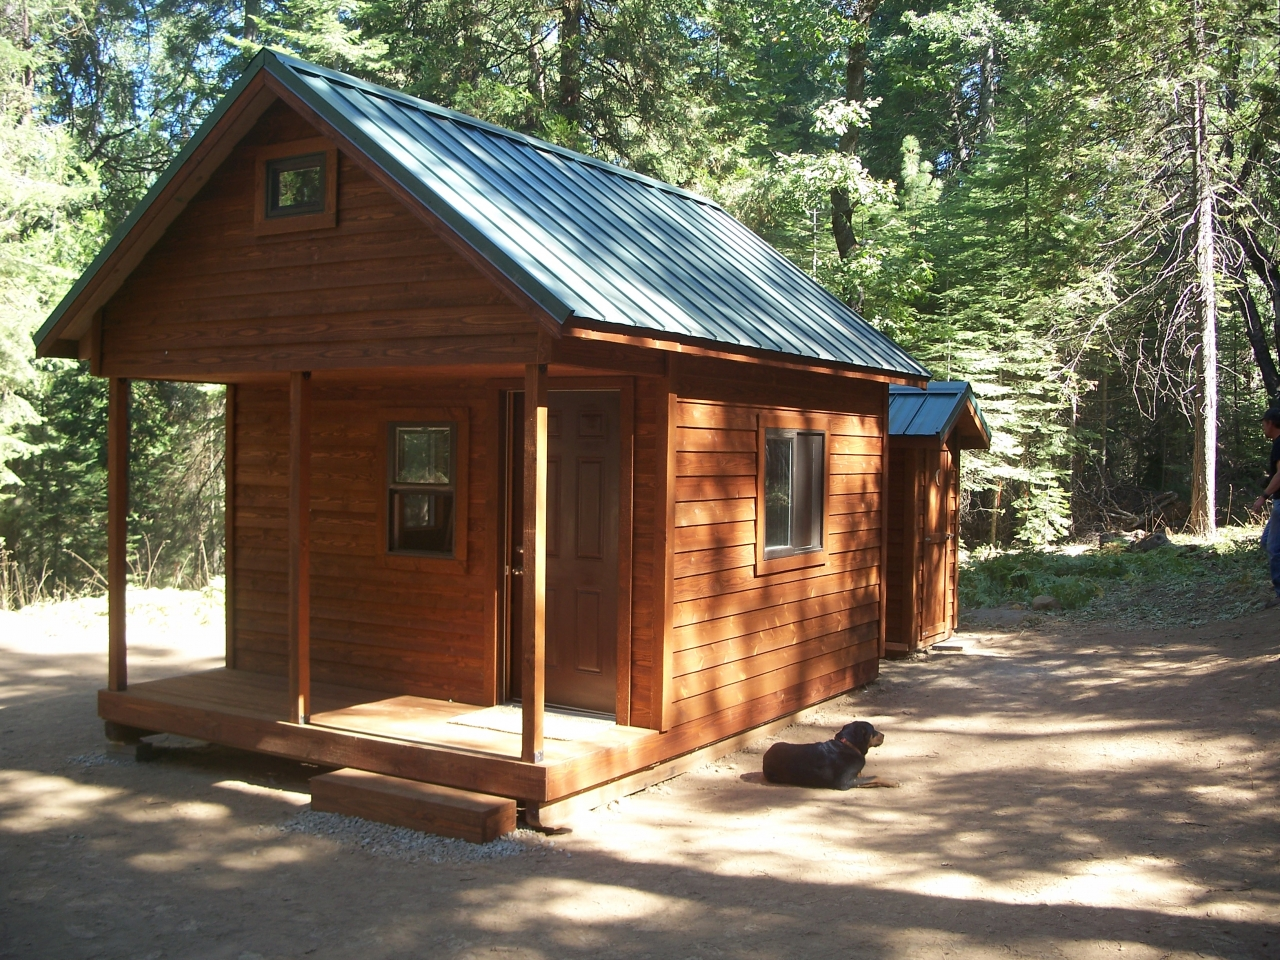 Camping Cabin Kits Affordable Log Cabin Kits Camp Cabin